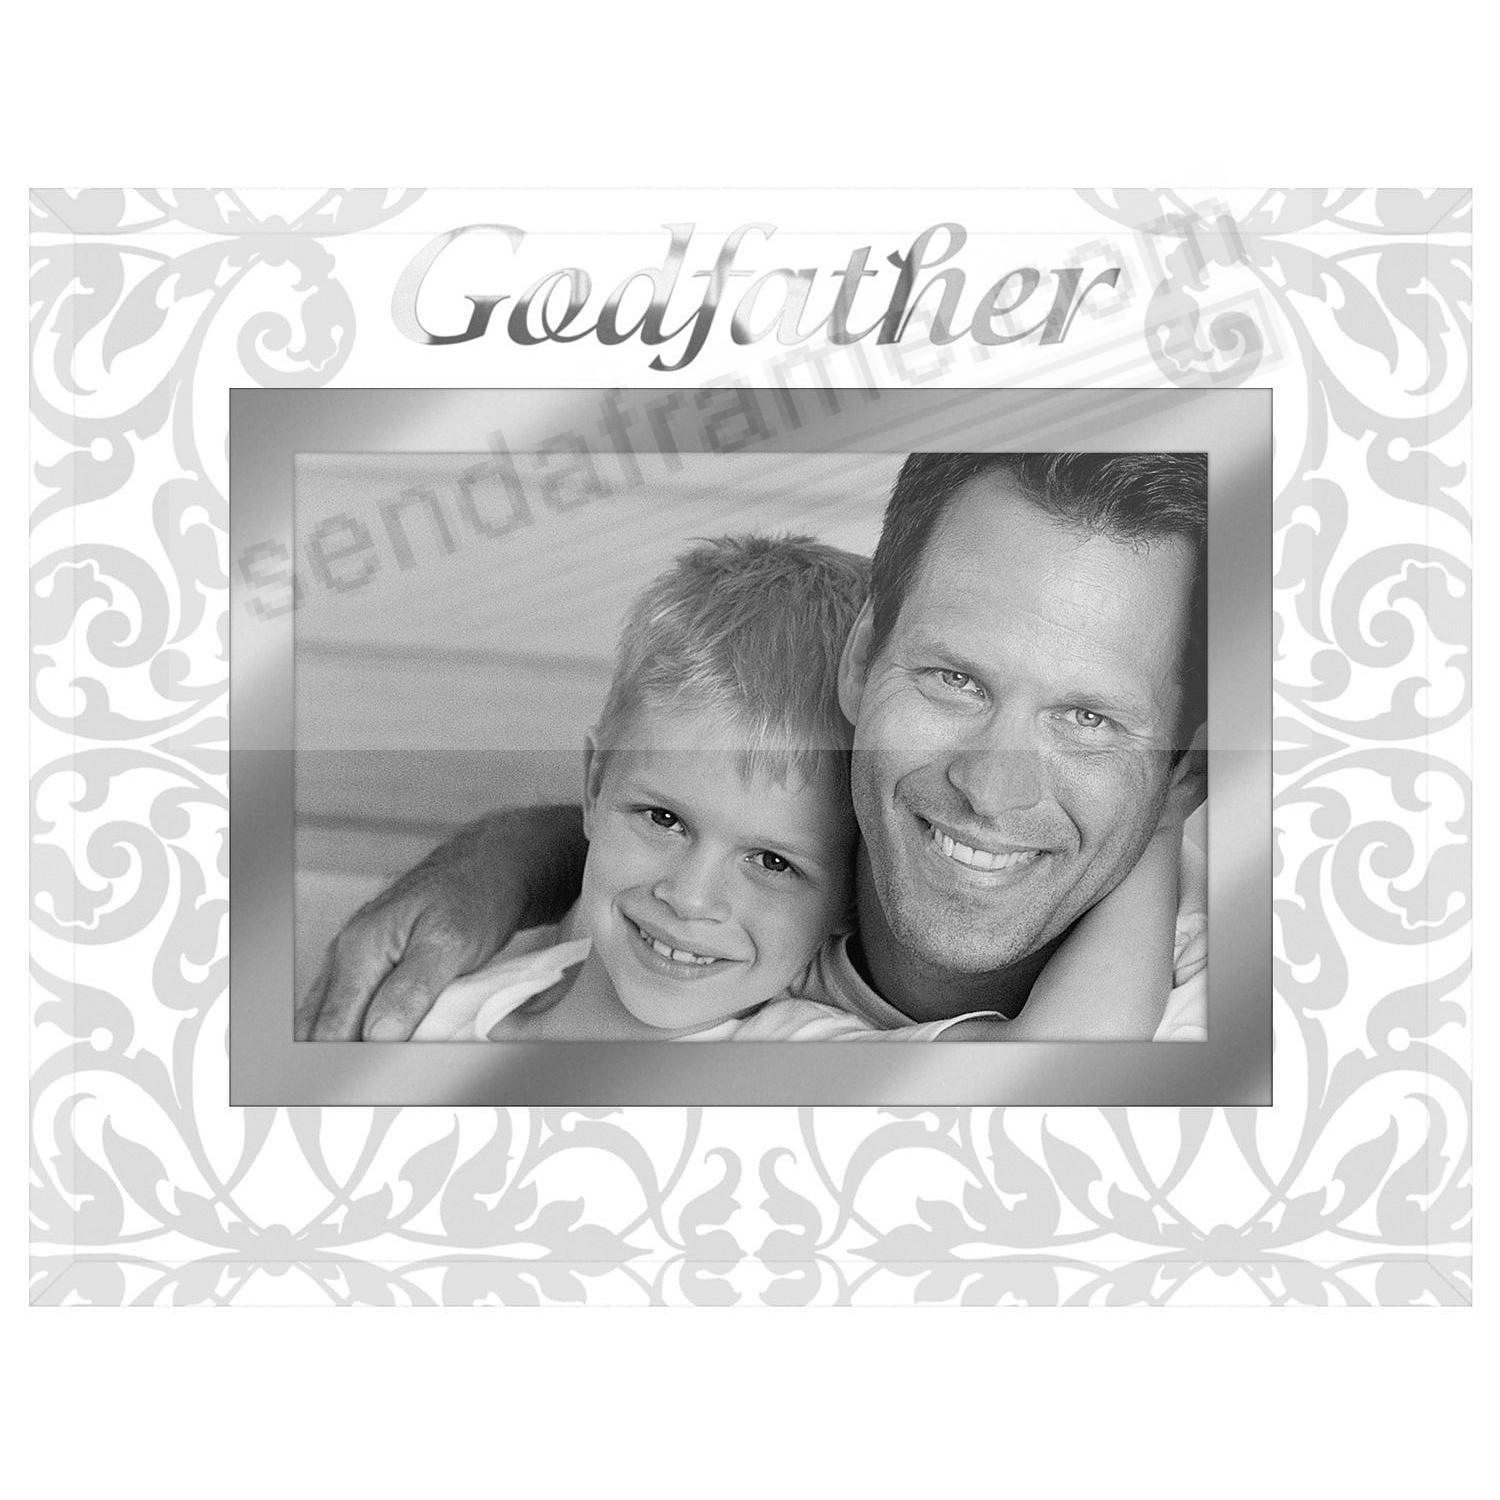 Clear Expressions GODFATHER glass keepsake - Picture Frames, Photo ...